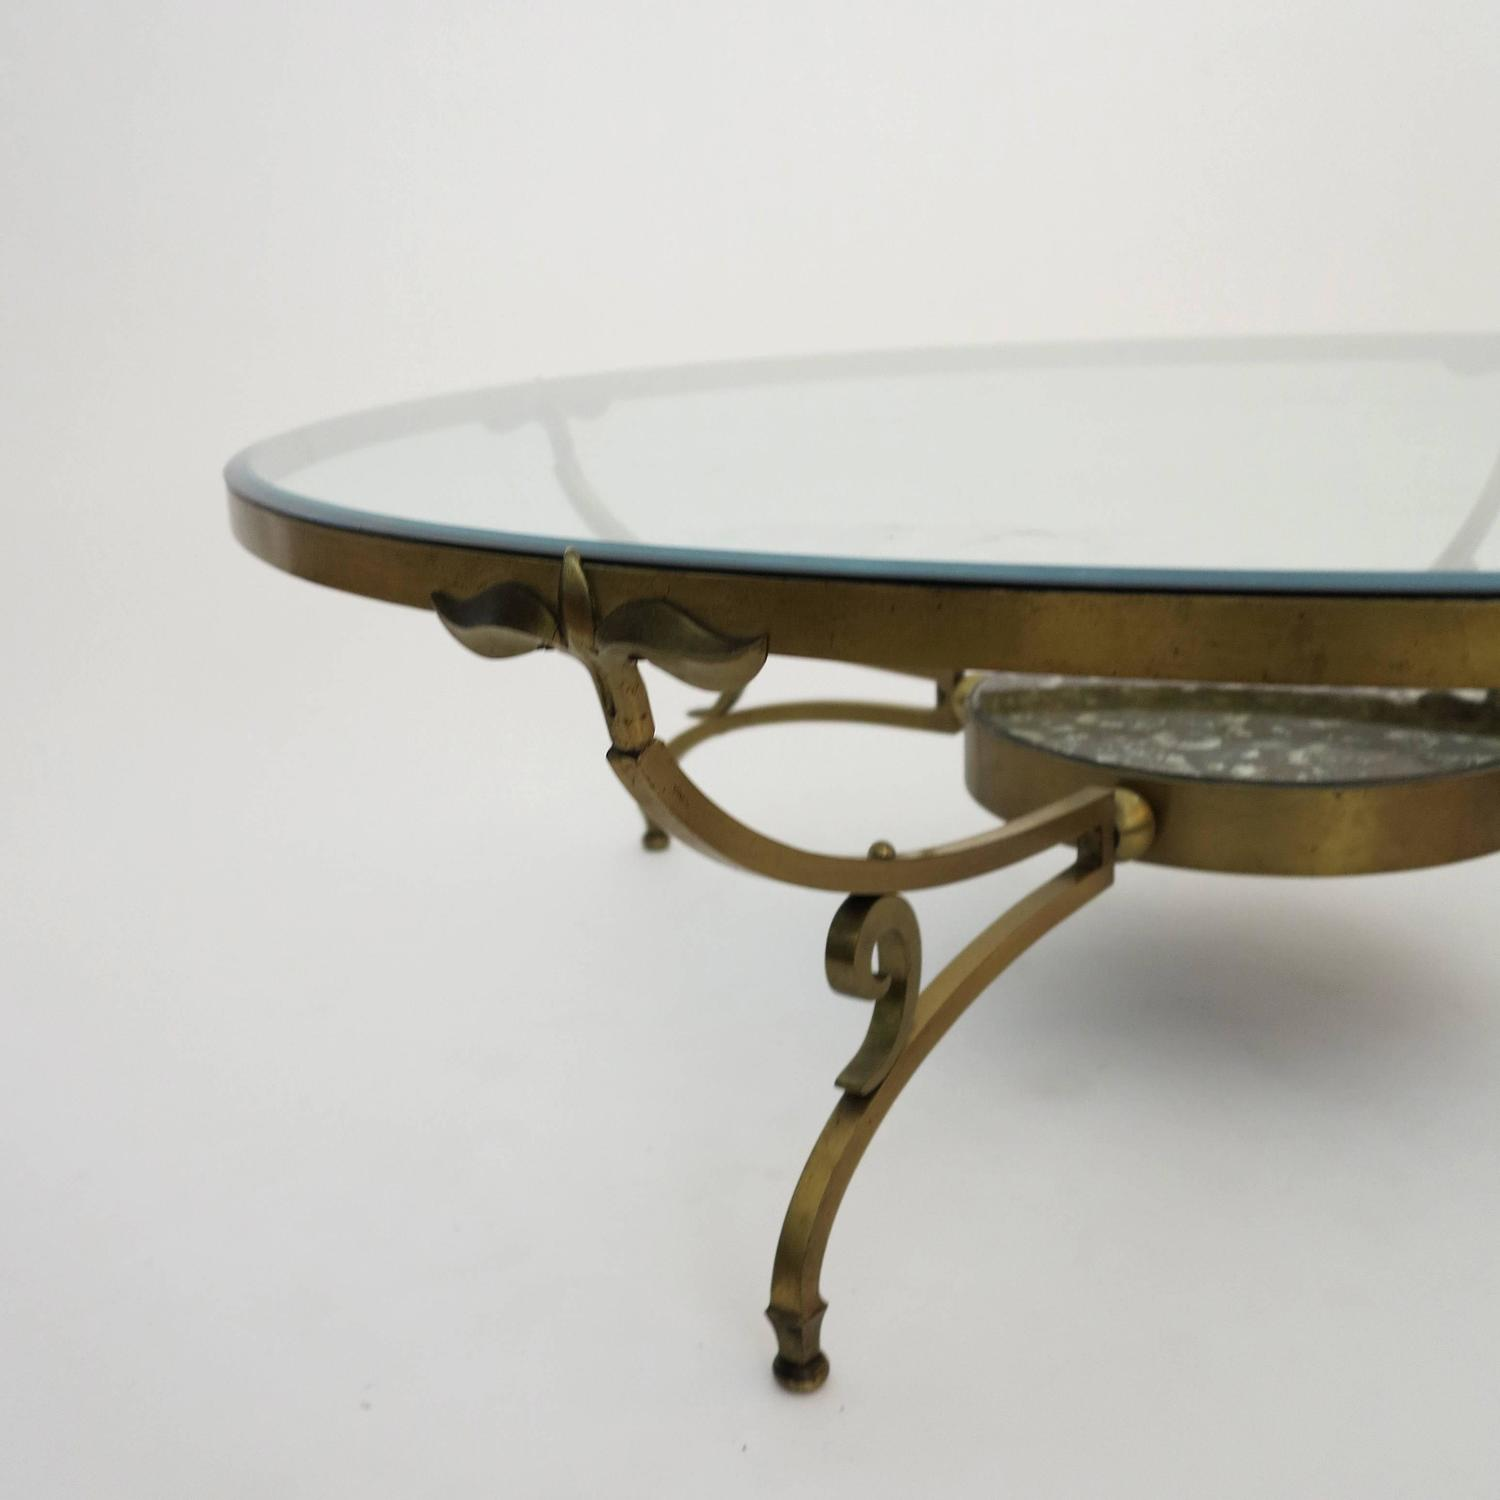 Round 3 Round Coffee Table Made Of Metal Cm ø80x23h: Round Bronze And Glass Coffee Table By Arturo Pani For